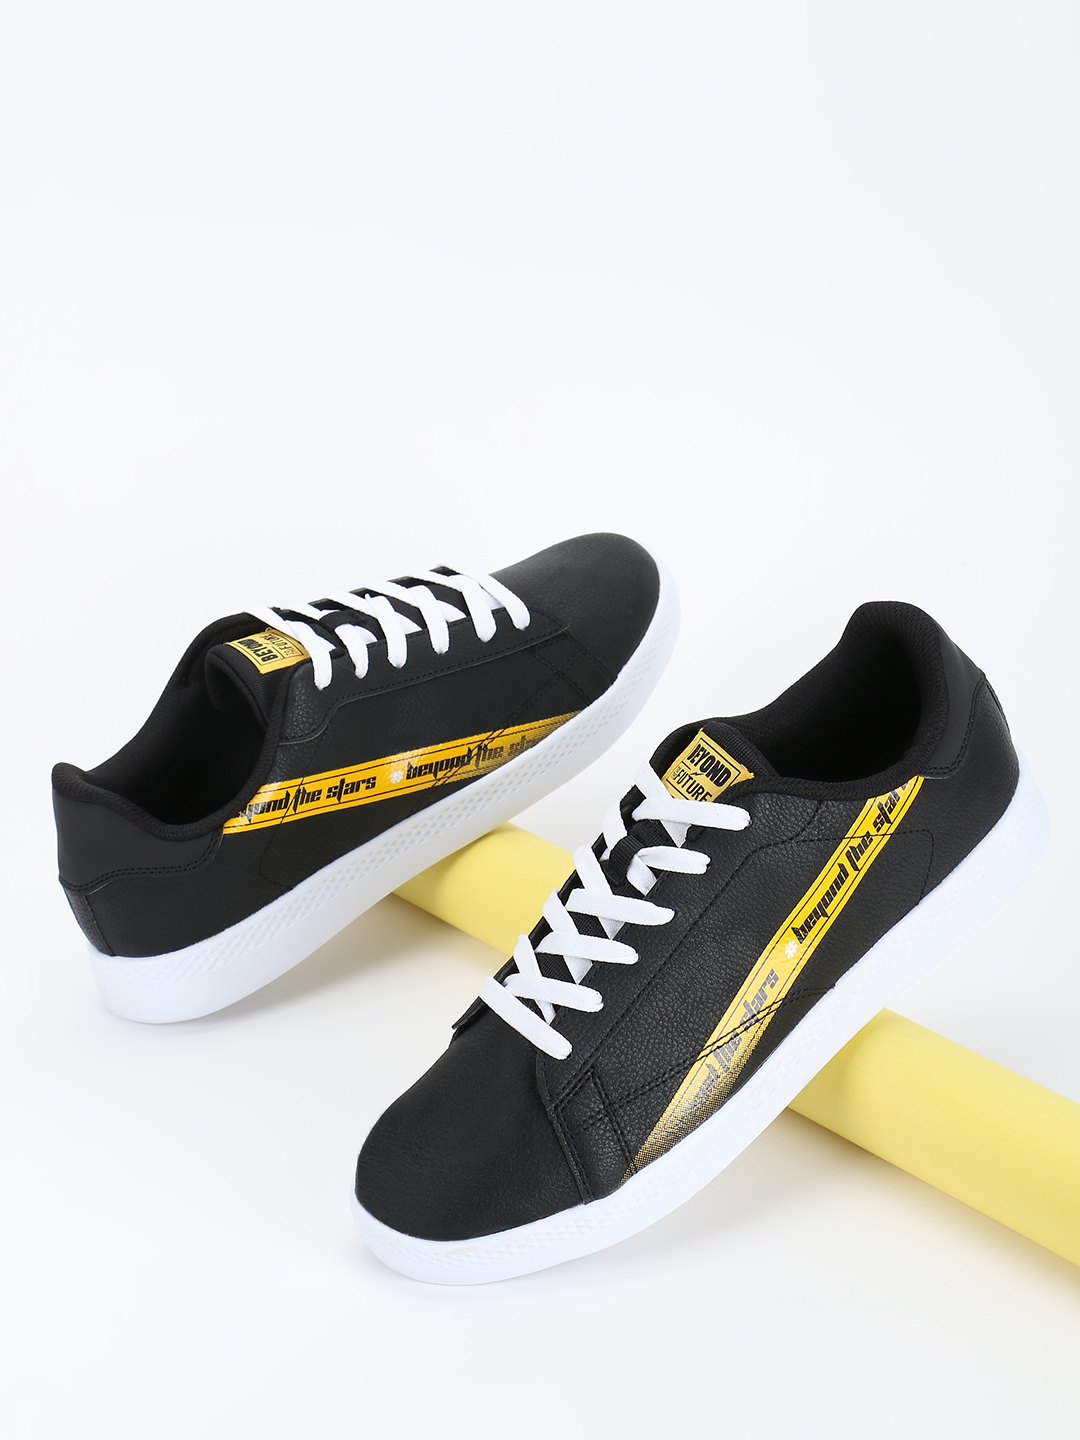 361 Degree Black Skateboarding Shoes 1